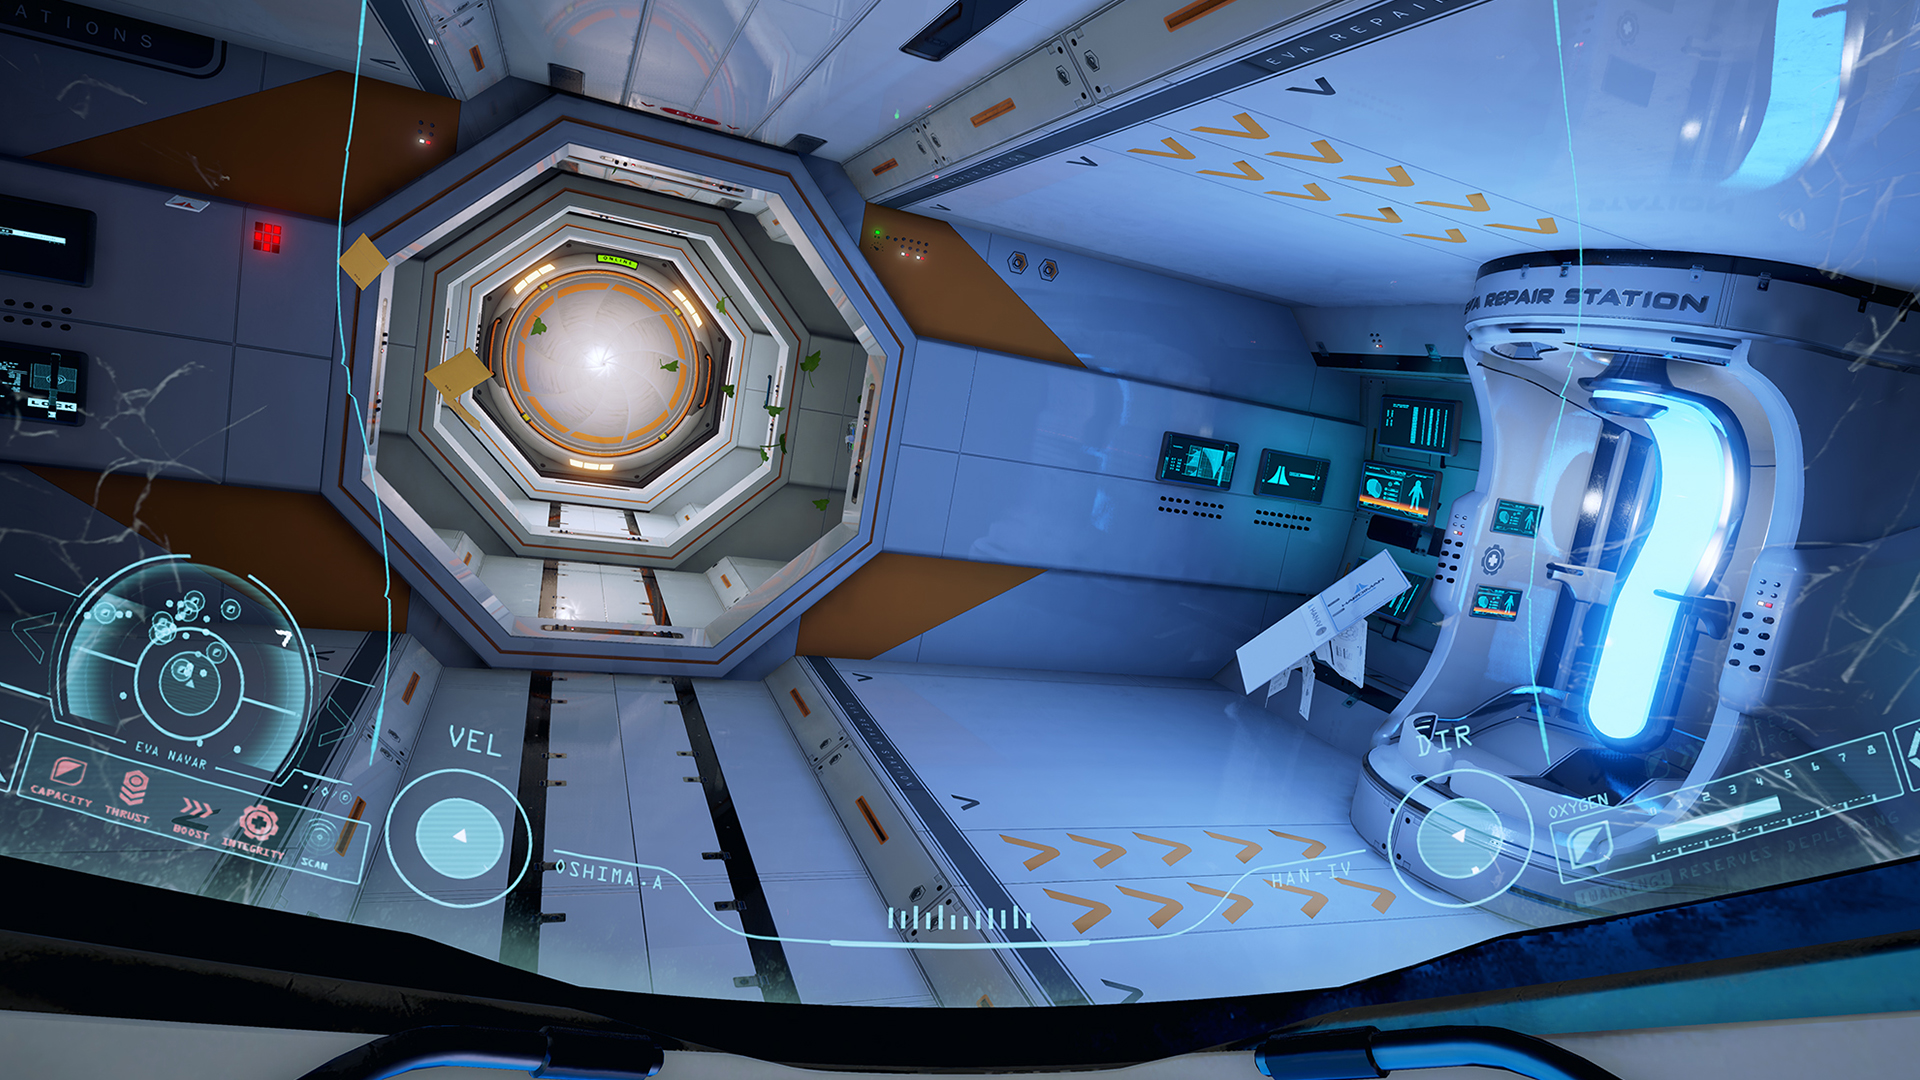 Adr1ft Officially Cancelled For The Xbox One